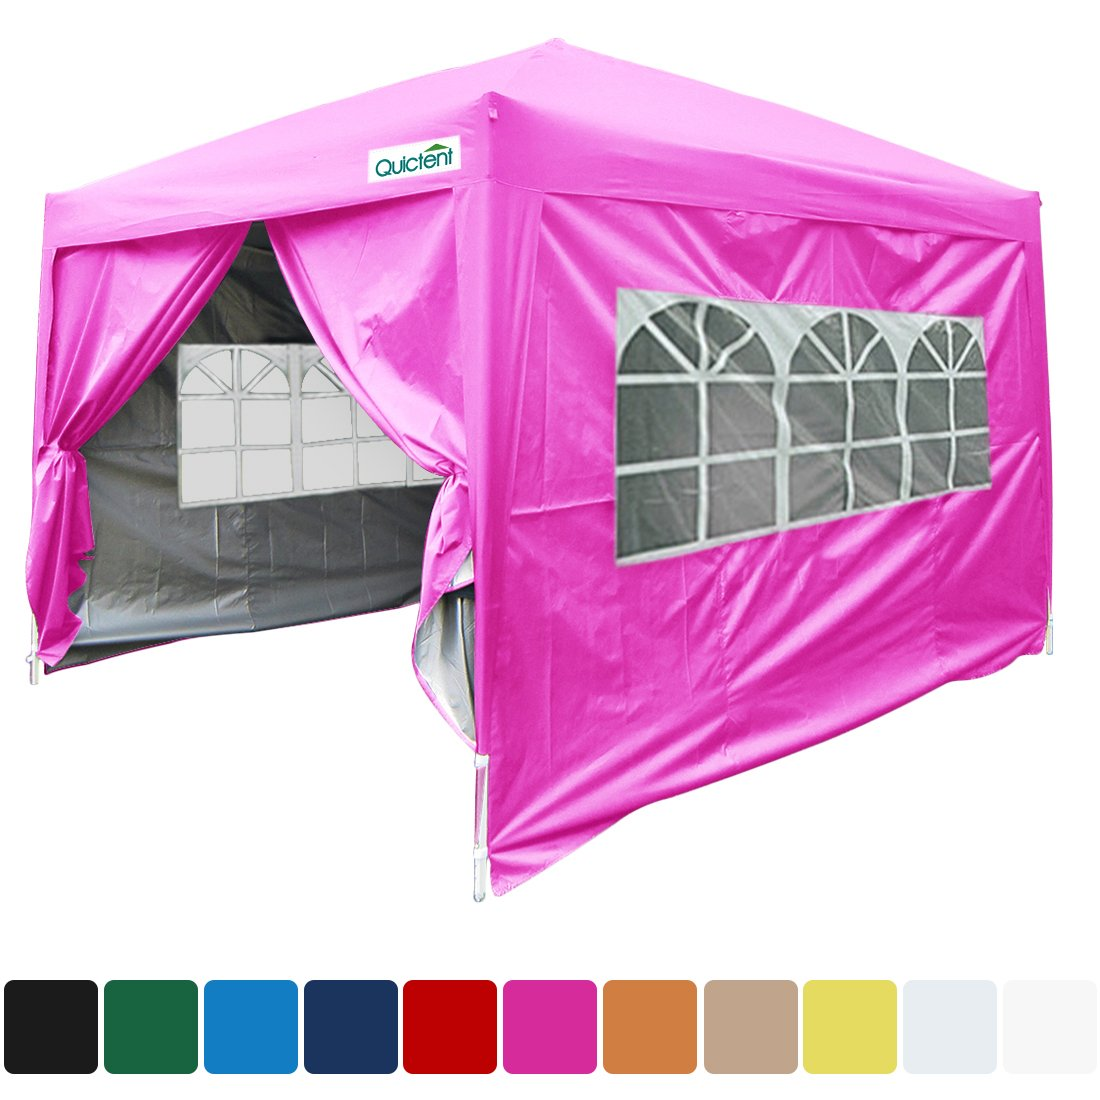 Quictent Silvox 10x10 EZ Pop Up Canopy Party Tent Instant Gazebo with 4 Walls 100% Waterproof